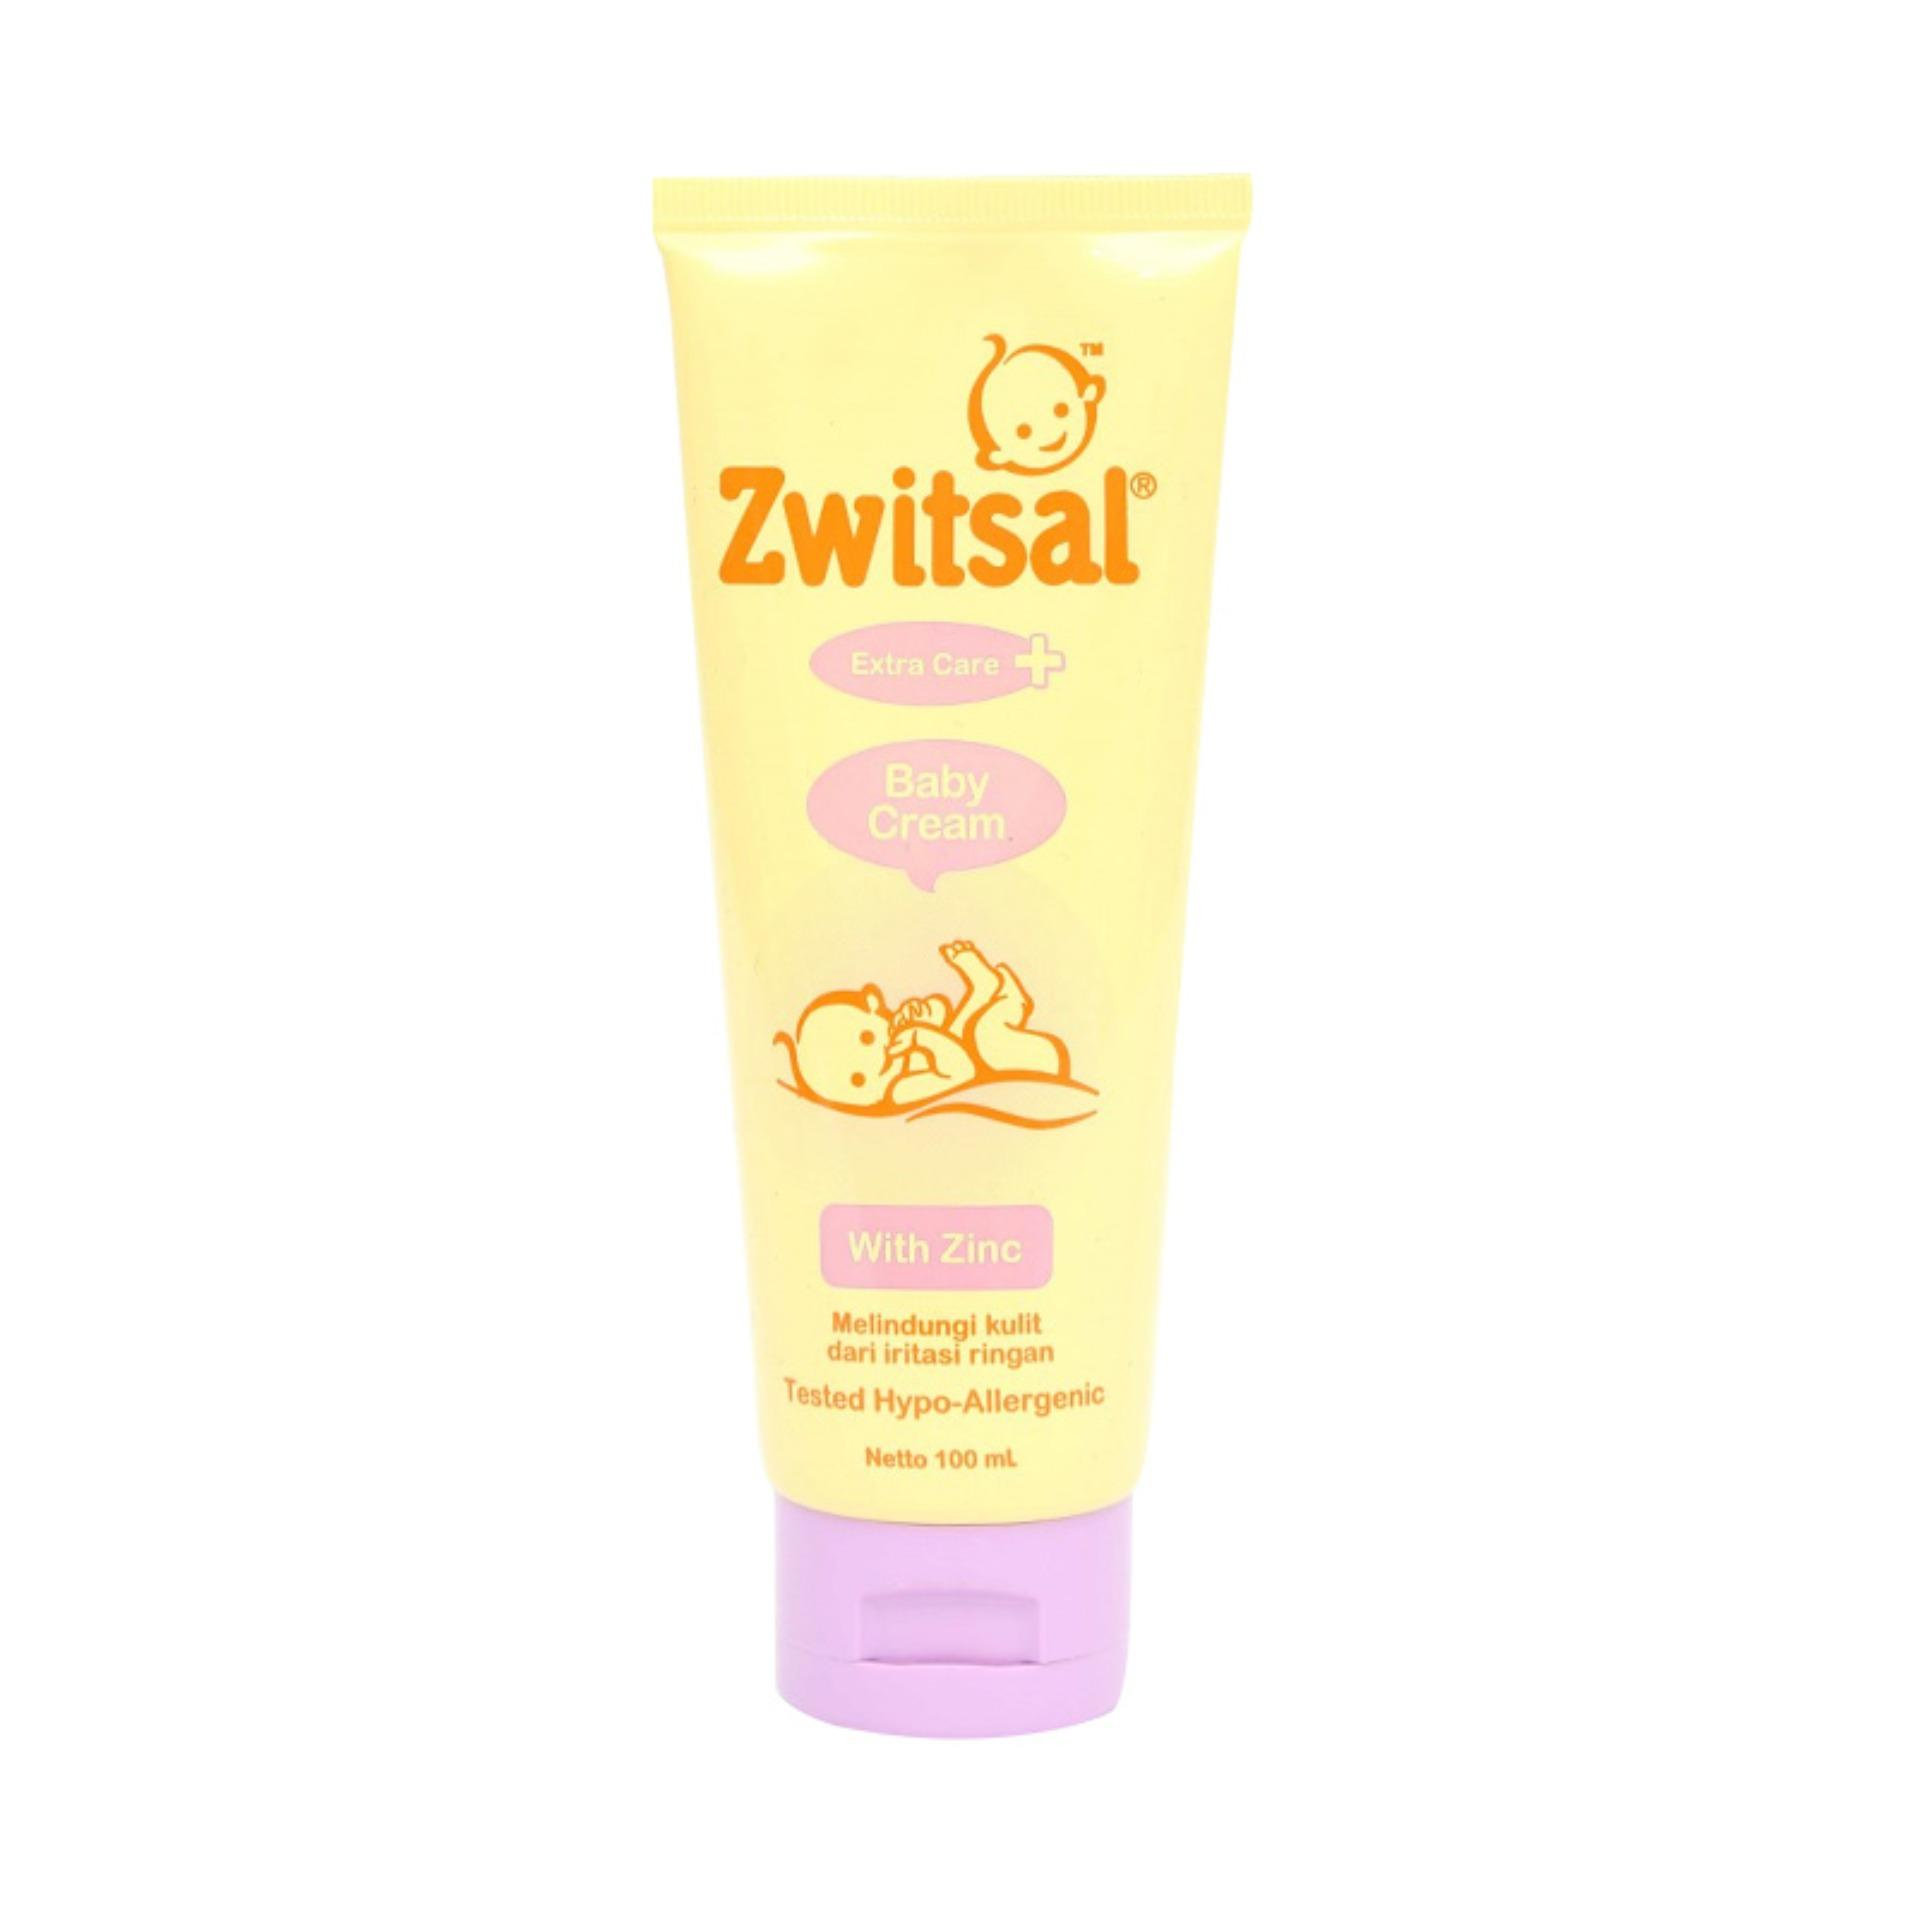 Penawaran Zwitsal Baby Bath Milk Honey 200ml Toko Perlengkapan Lotion Classic Isi 100 Ml Extra Care Cream With Zinc